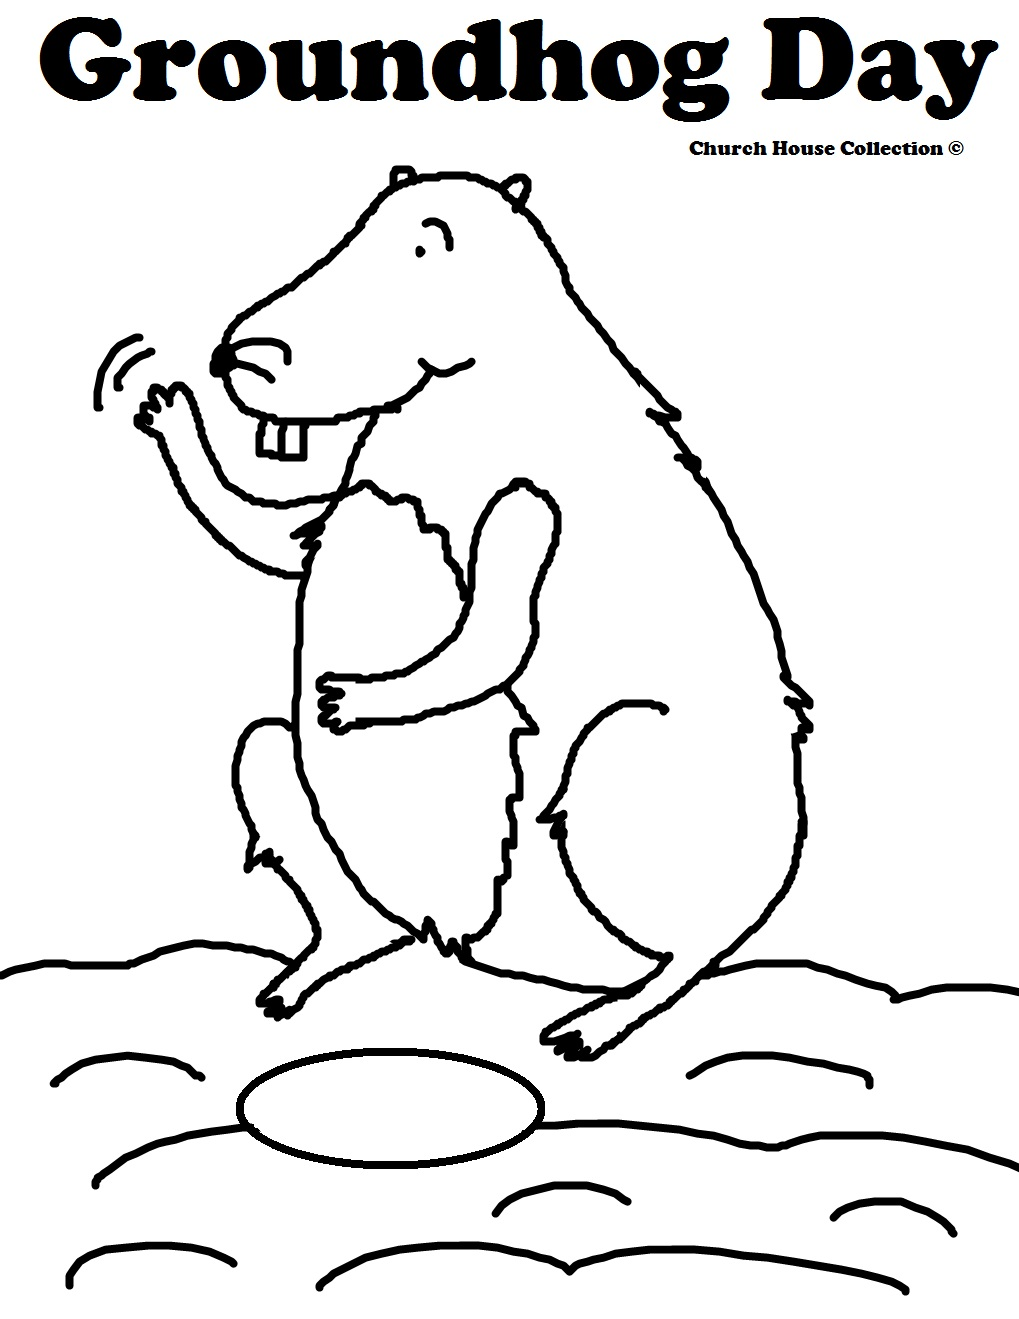 Adult Top Ground Hog Coloring Page Gallery Images cute groundhog day coloring pages waving gallery images